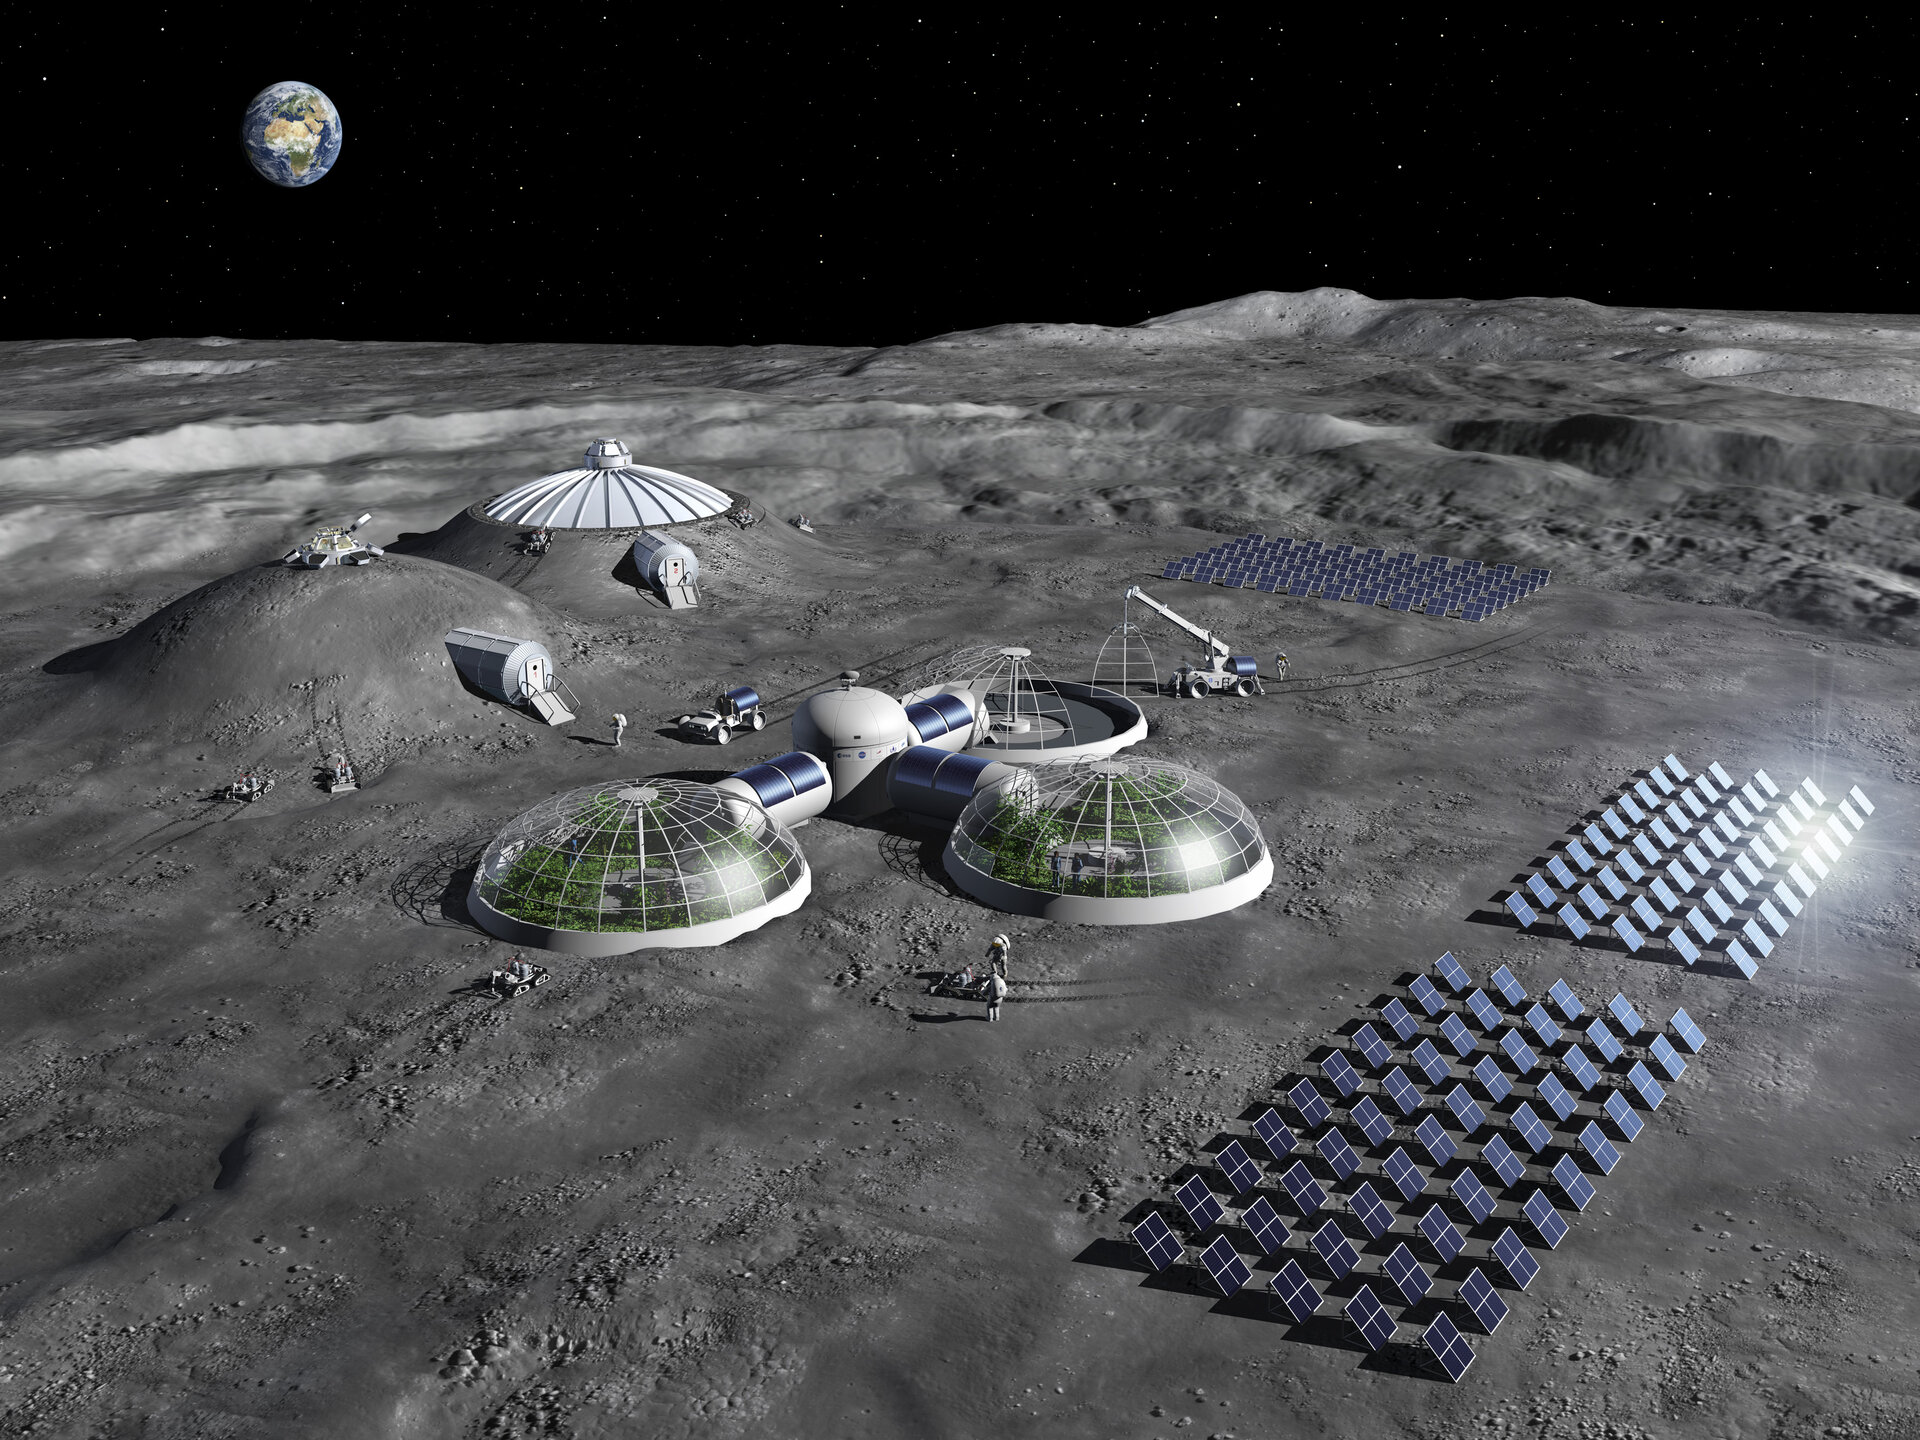 Artist's impression of a moon base.